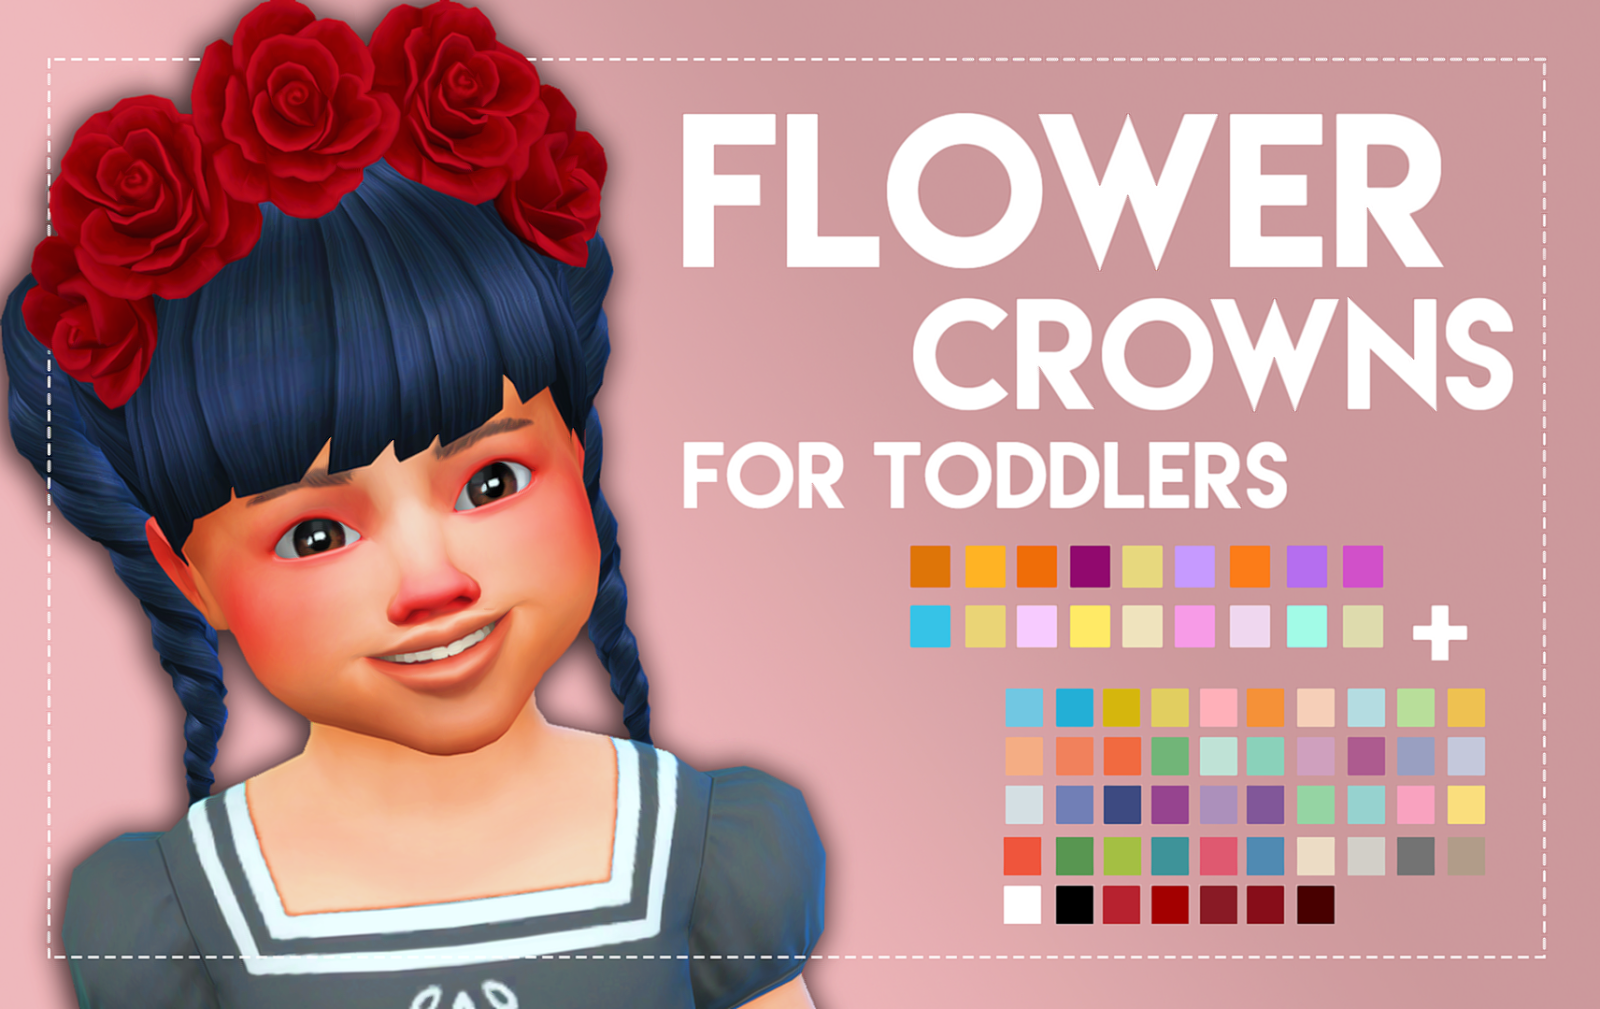 sims 4 mm cc maxis match flower crown toddler | Sims 4